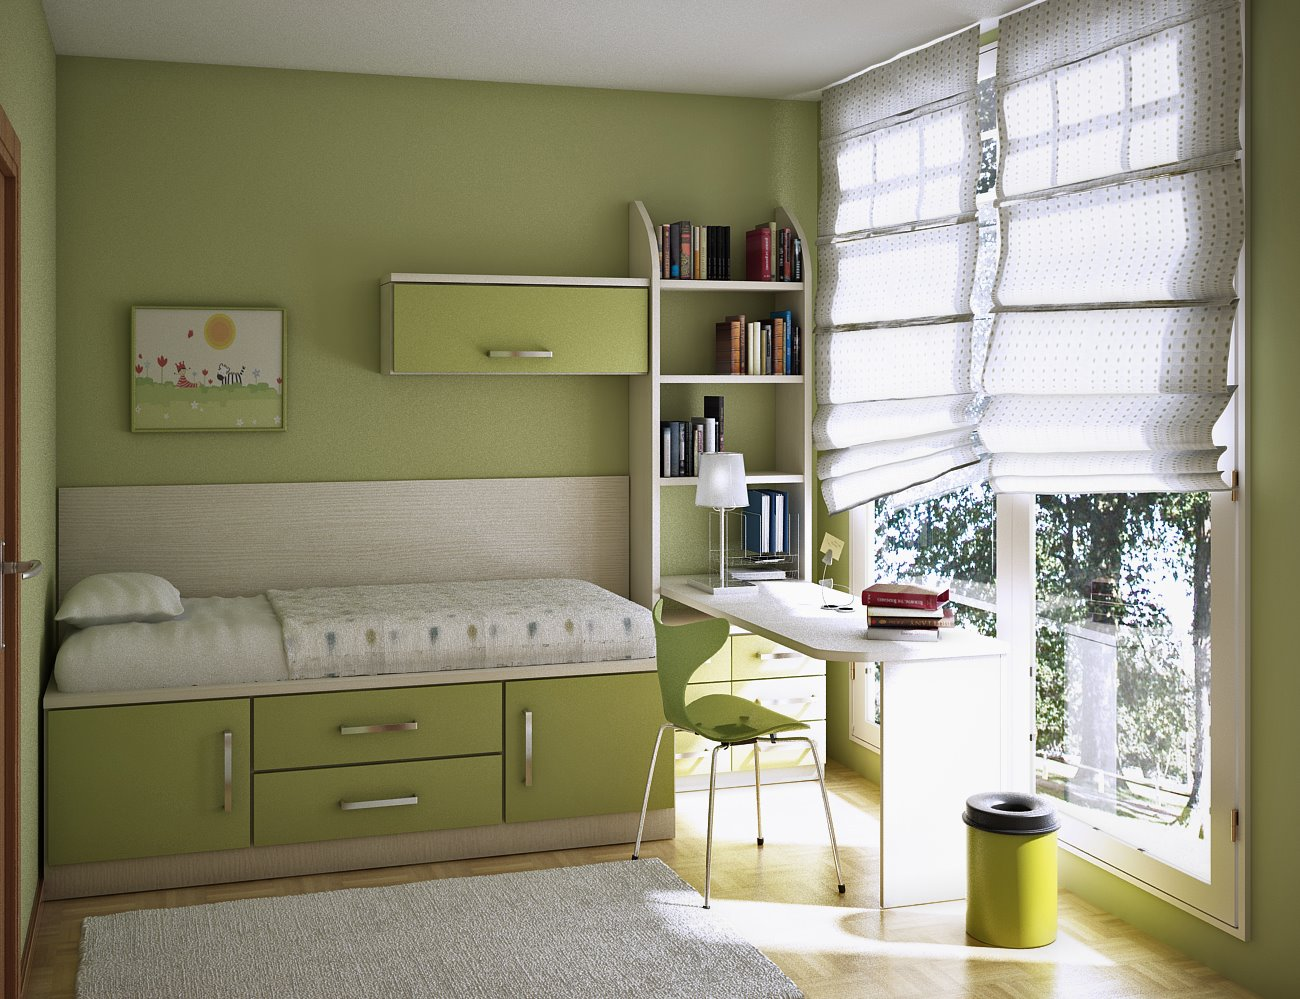 Room color ideas for teenage girls : Fresh Calming Restful Lime Green Airy Big Window Sunny Daybed Painted Wall Drawers Desk Teen Room